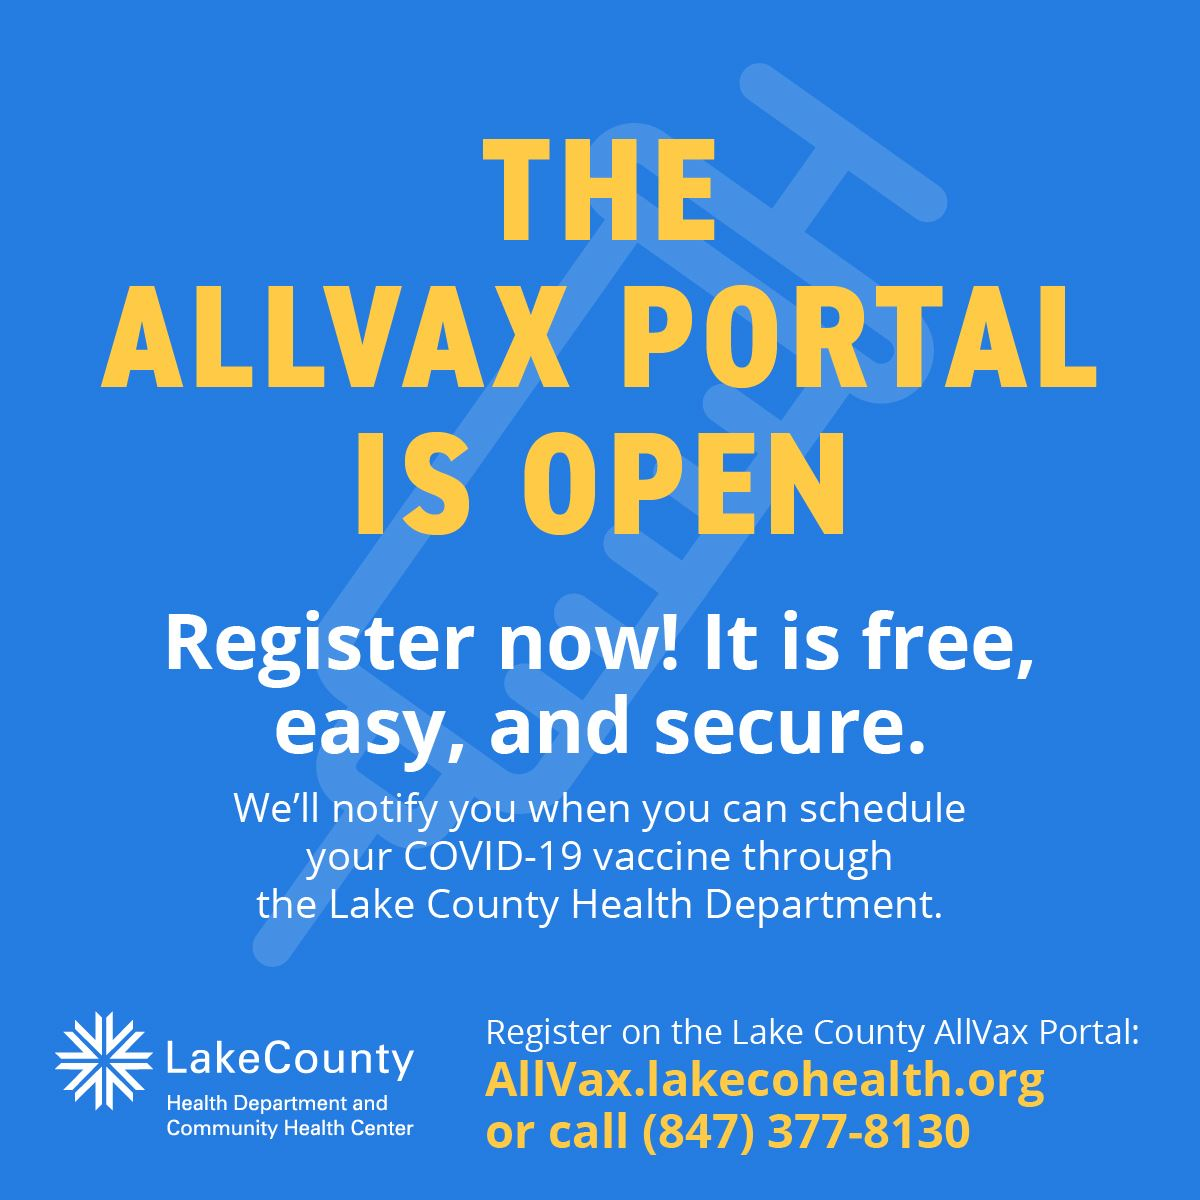 AllVax-Portal-Is-Open_Facebook-Instagram_English